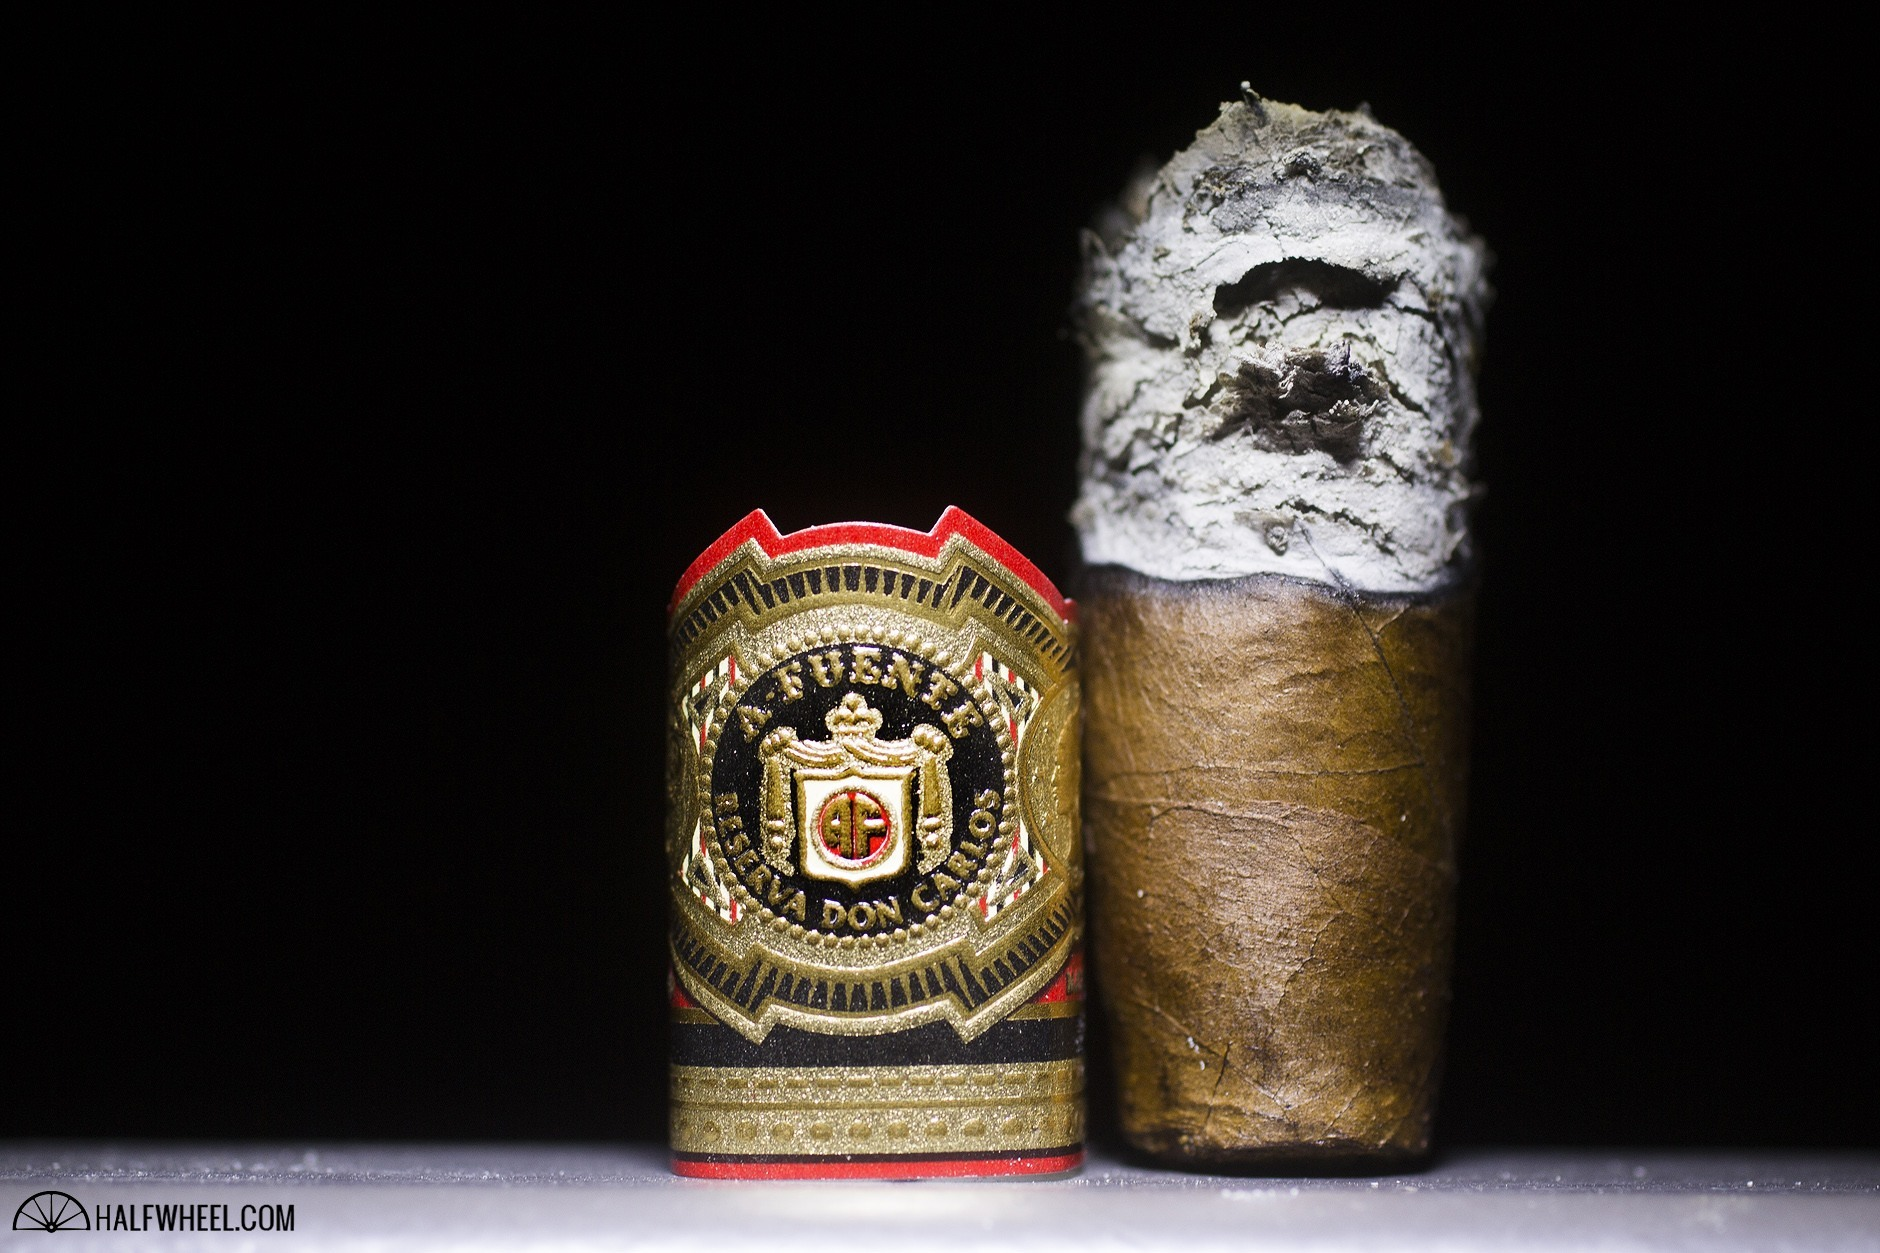 Arturo Fuente Don Carlos Eye of the Shark 4